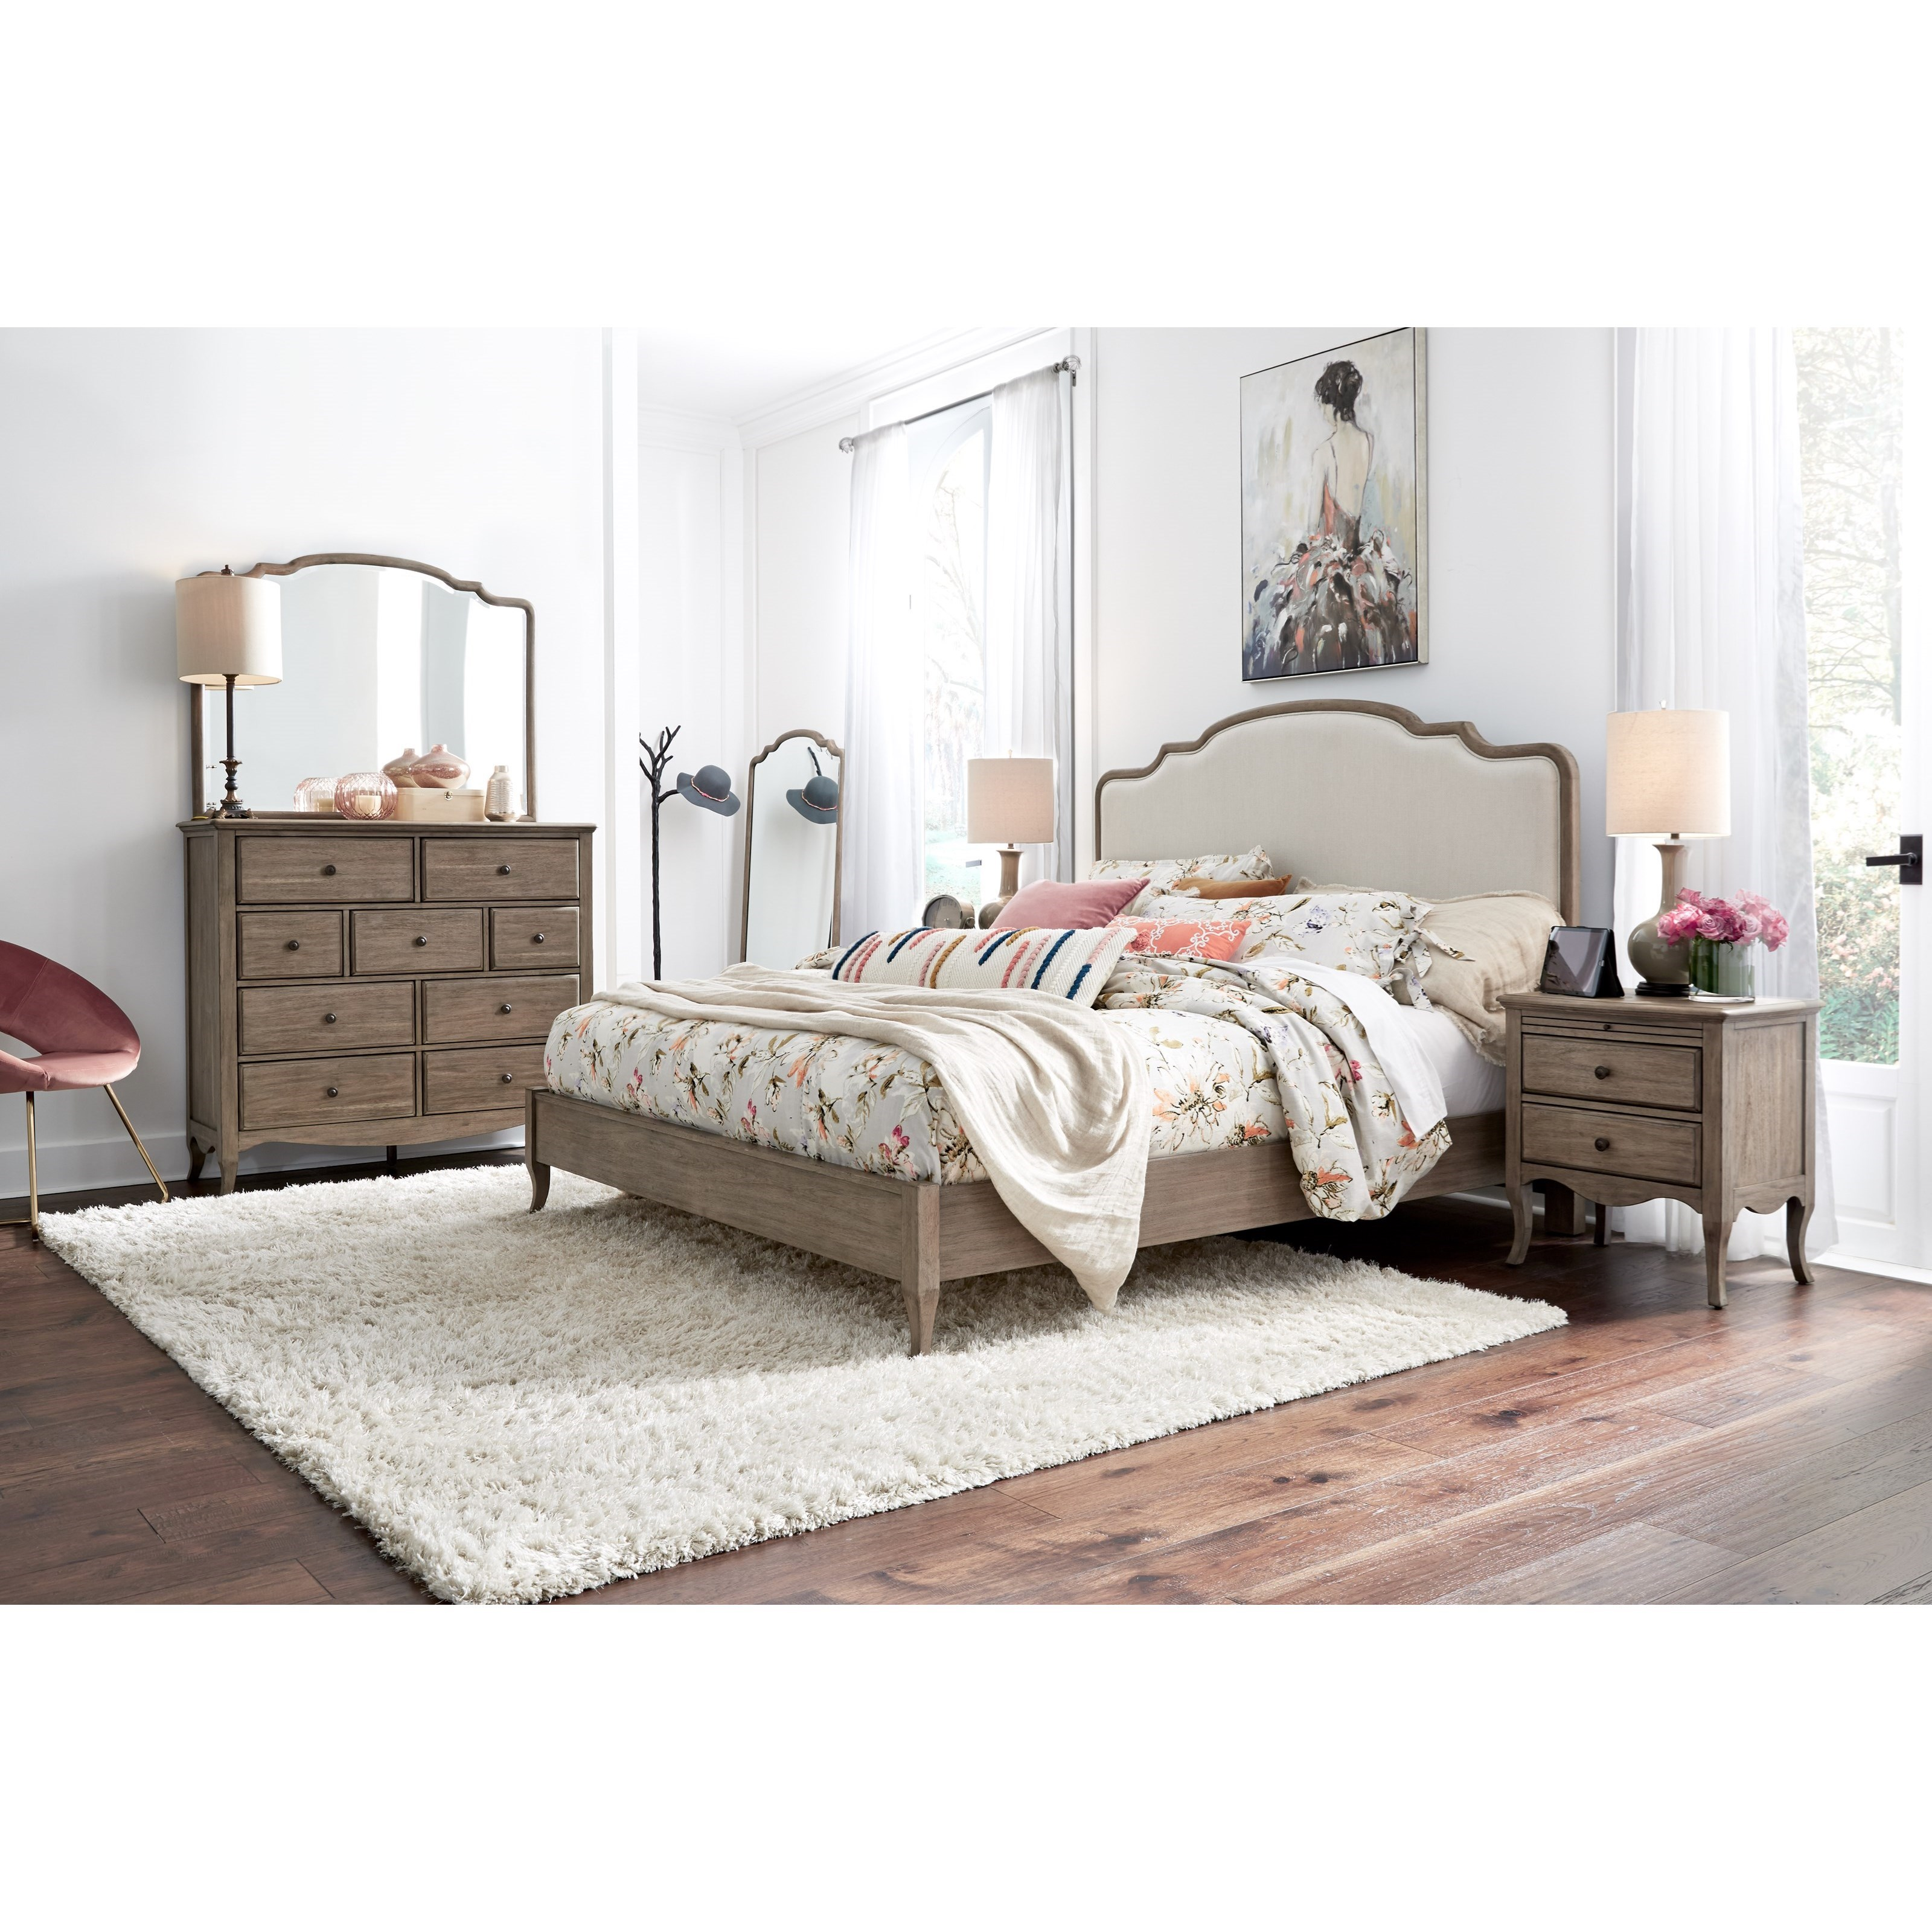 Provence Queen Bedroom Group by Aspenhome at Fashion Furniture